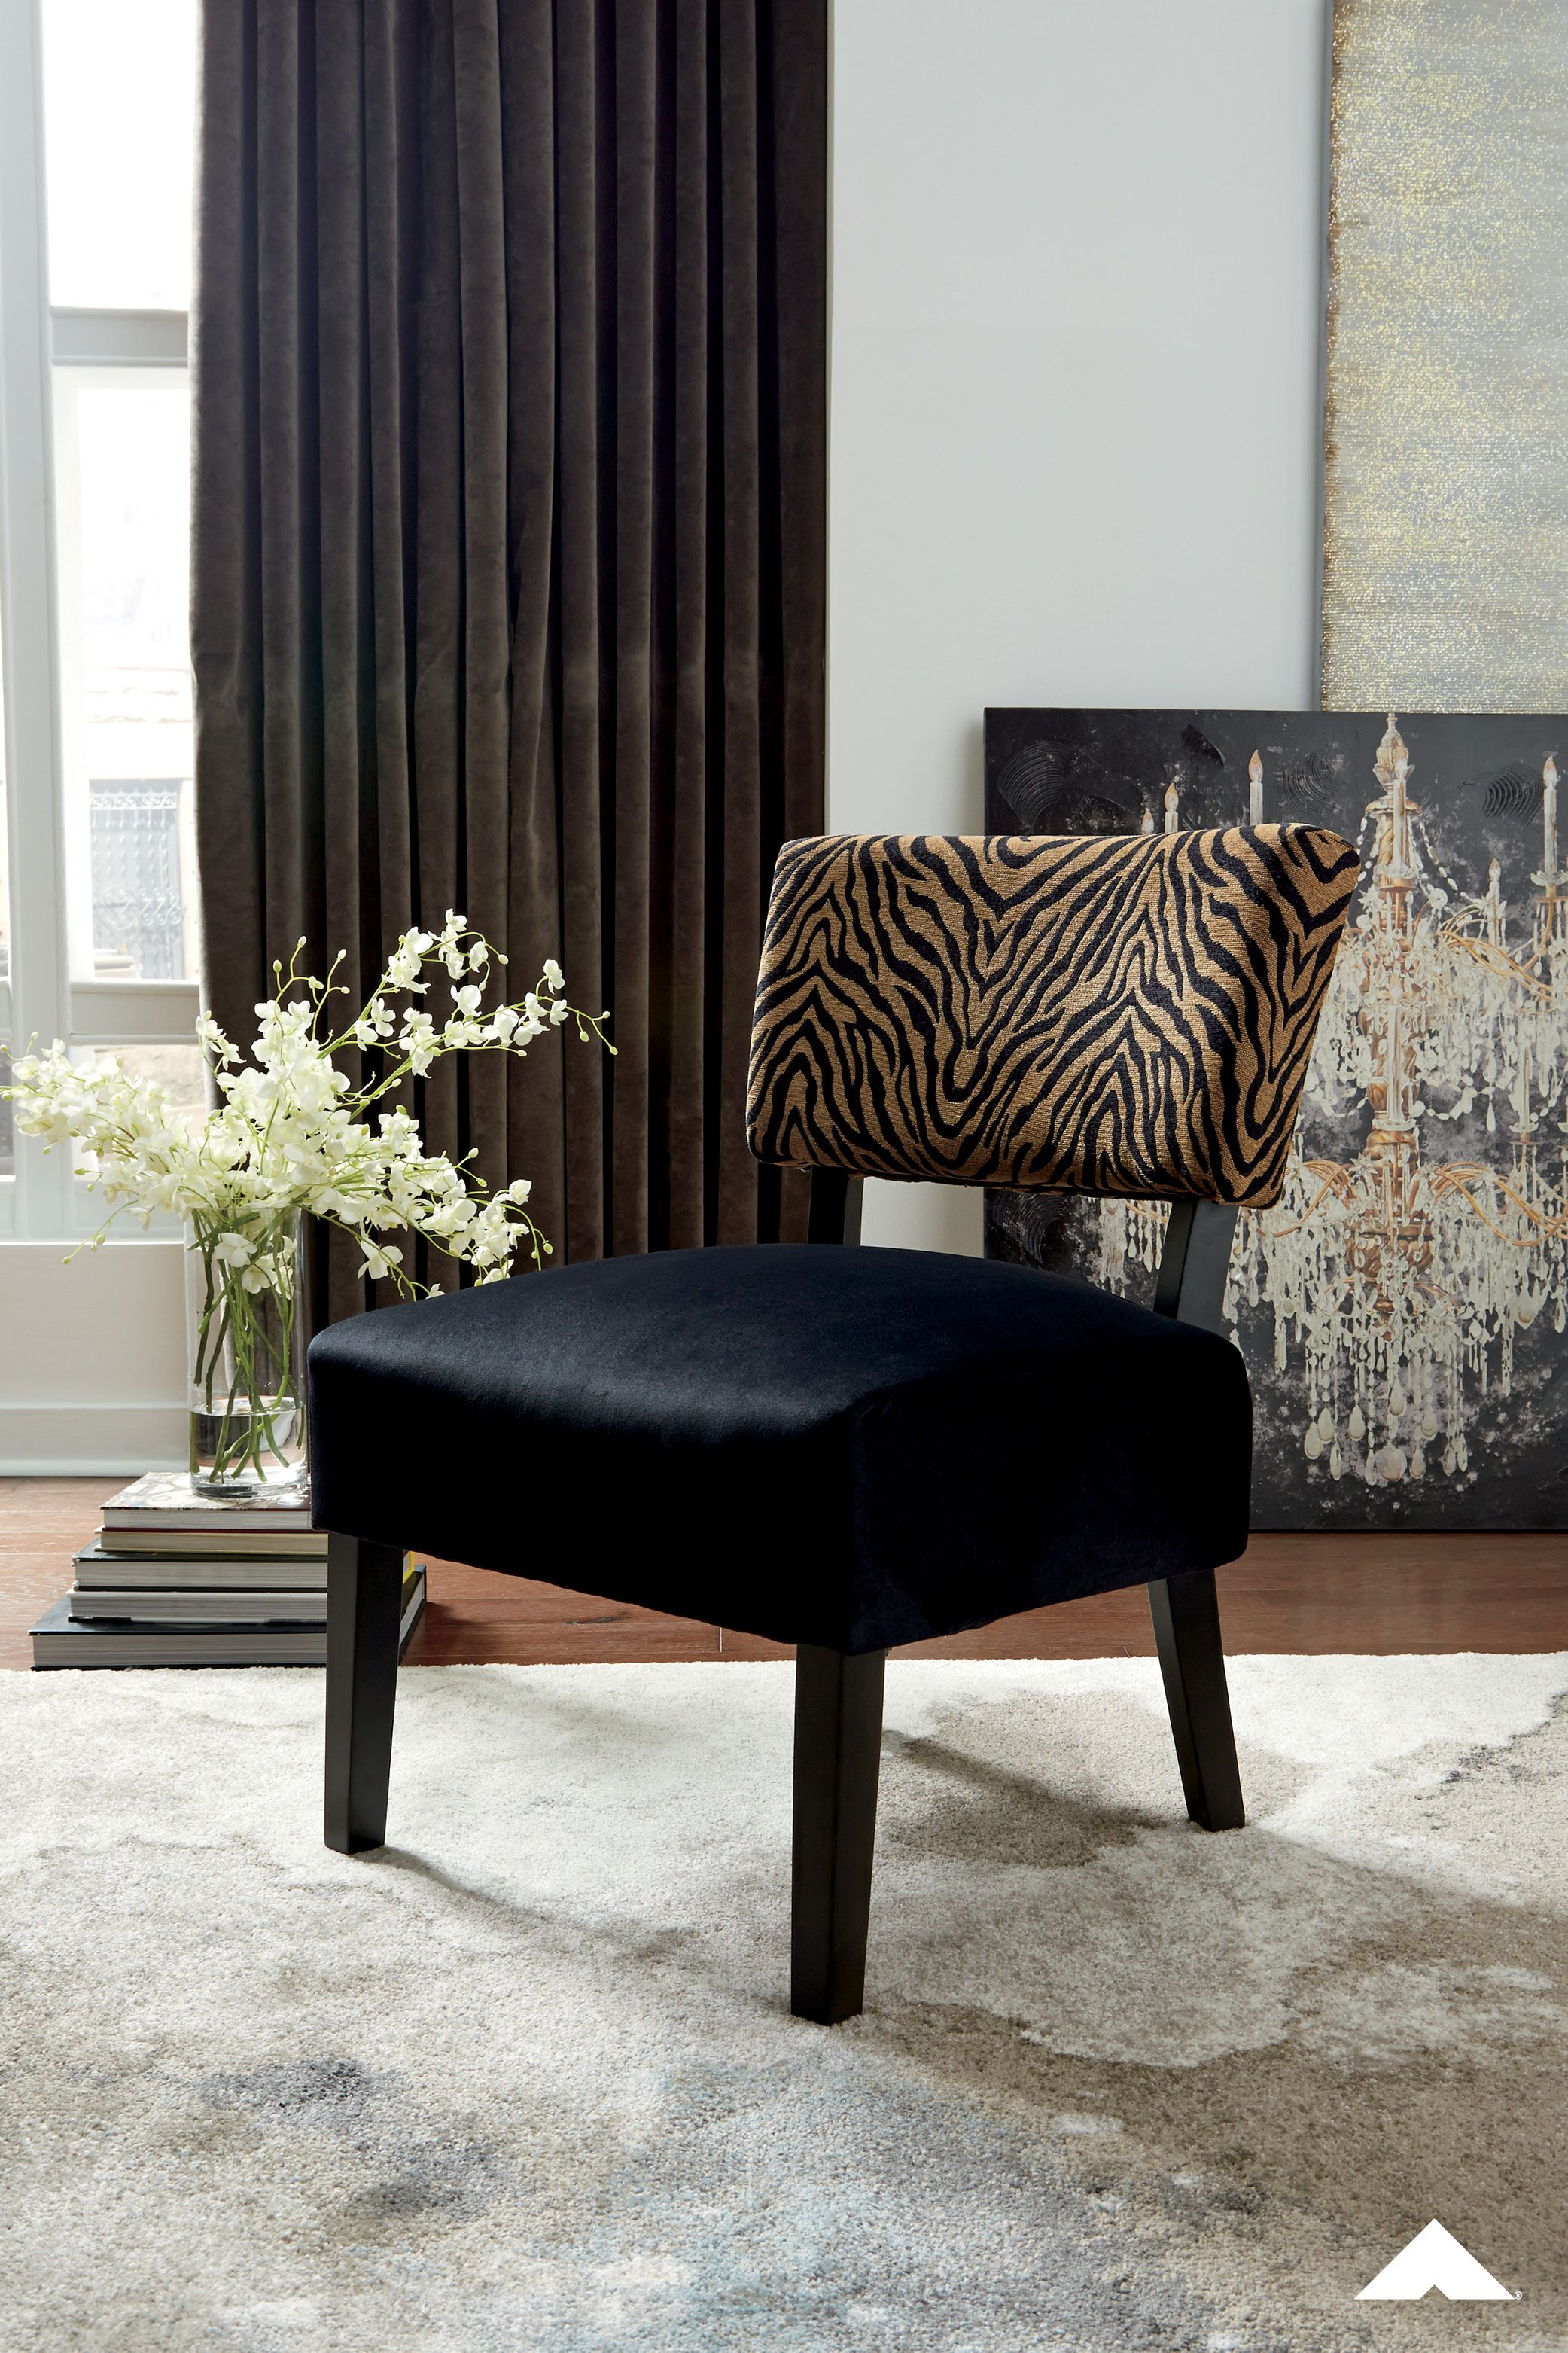 Parvin Black Gold Accent Chair By Ashley Furniture Go A Little Wild With This Animal Print Acce In 2020 With Images Printed Accent Chairs Accent Chairs Animal Print Accent Chair